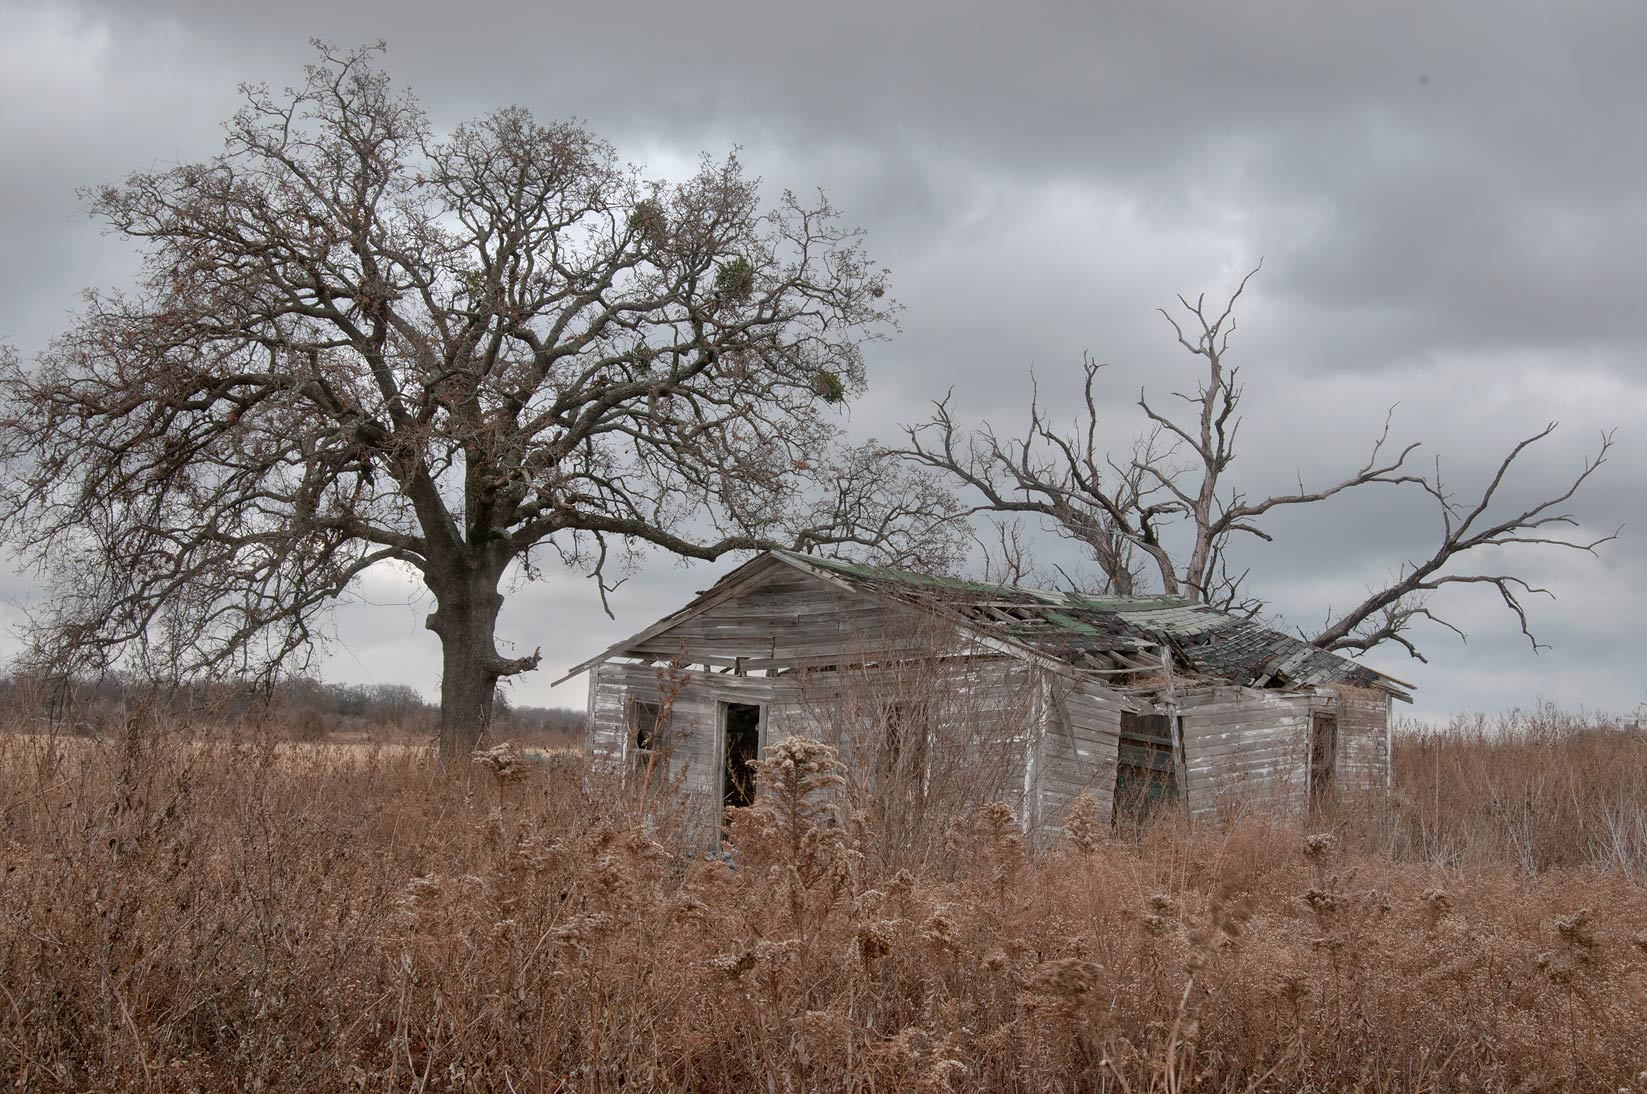 Abandoned farm with an old house at Rd. 2027 near Pleasant Grove, west from Bremond. Texas